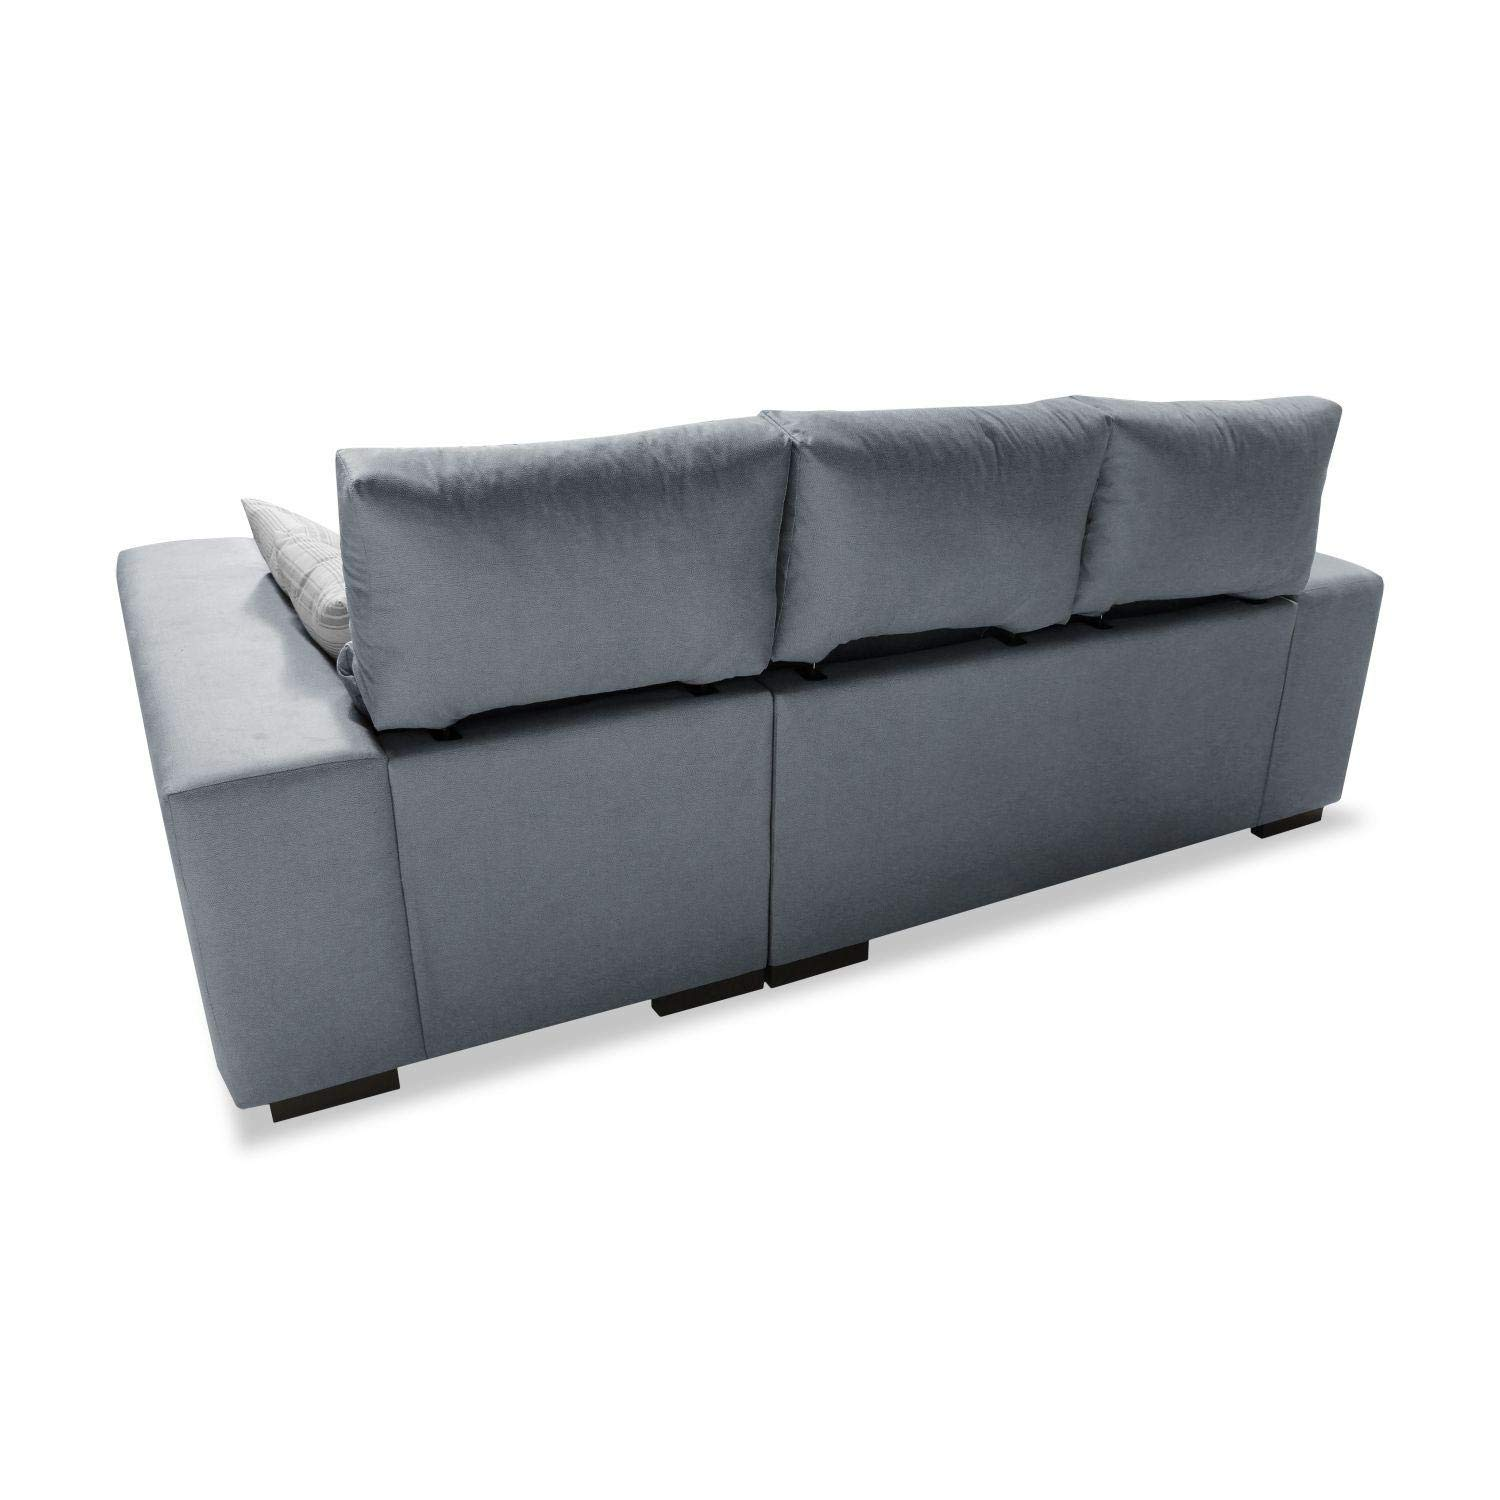 Muebles Baratos Sofa con Chaise Longue 3 plazas, Color Gris ...